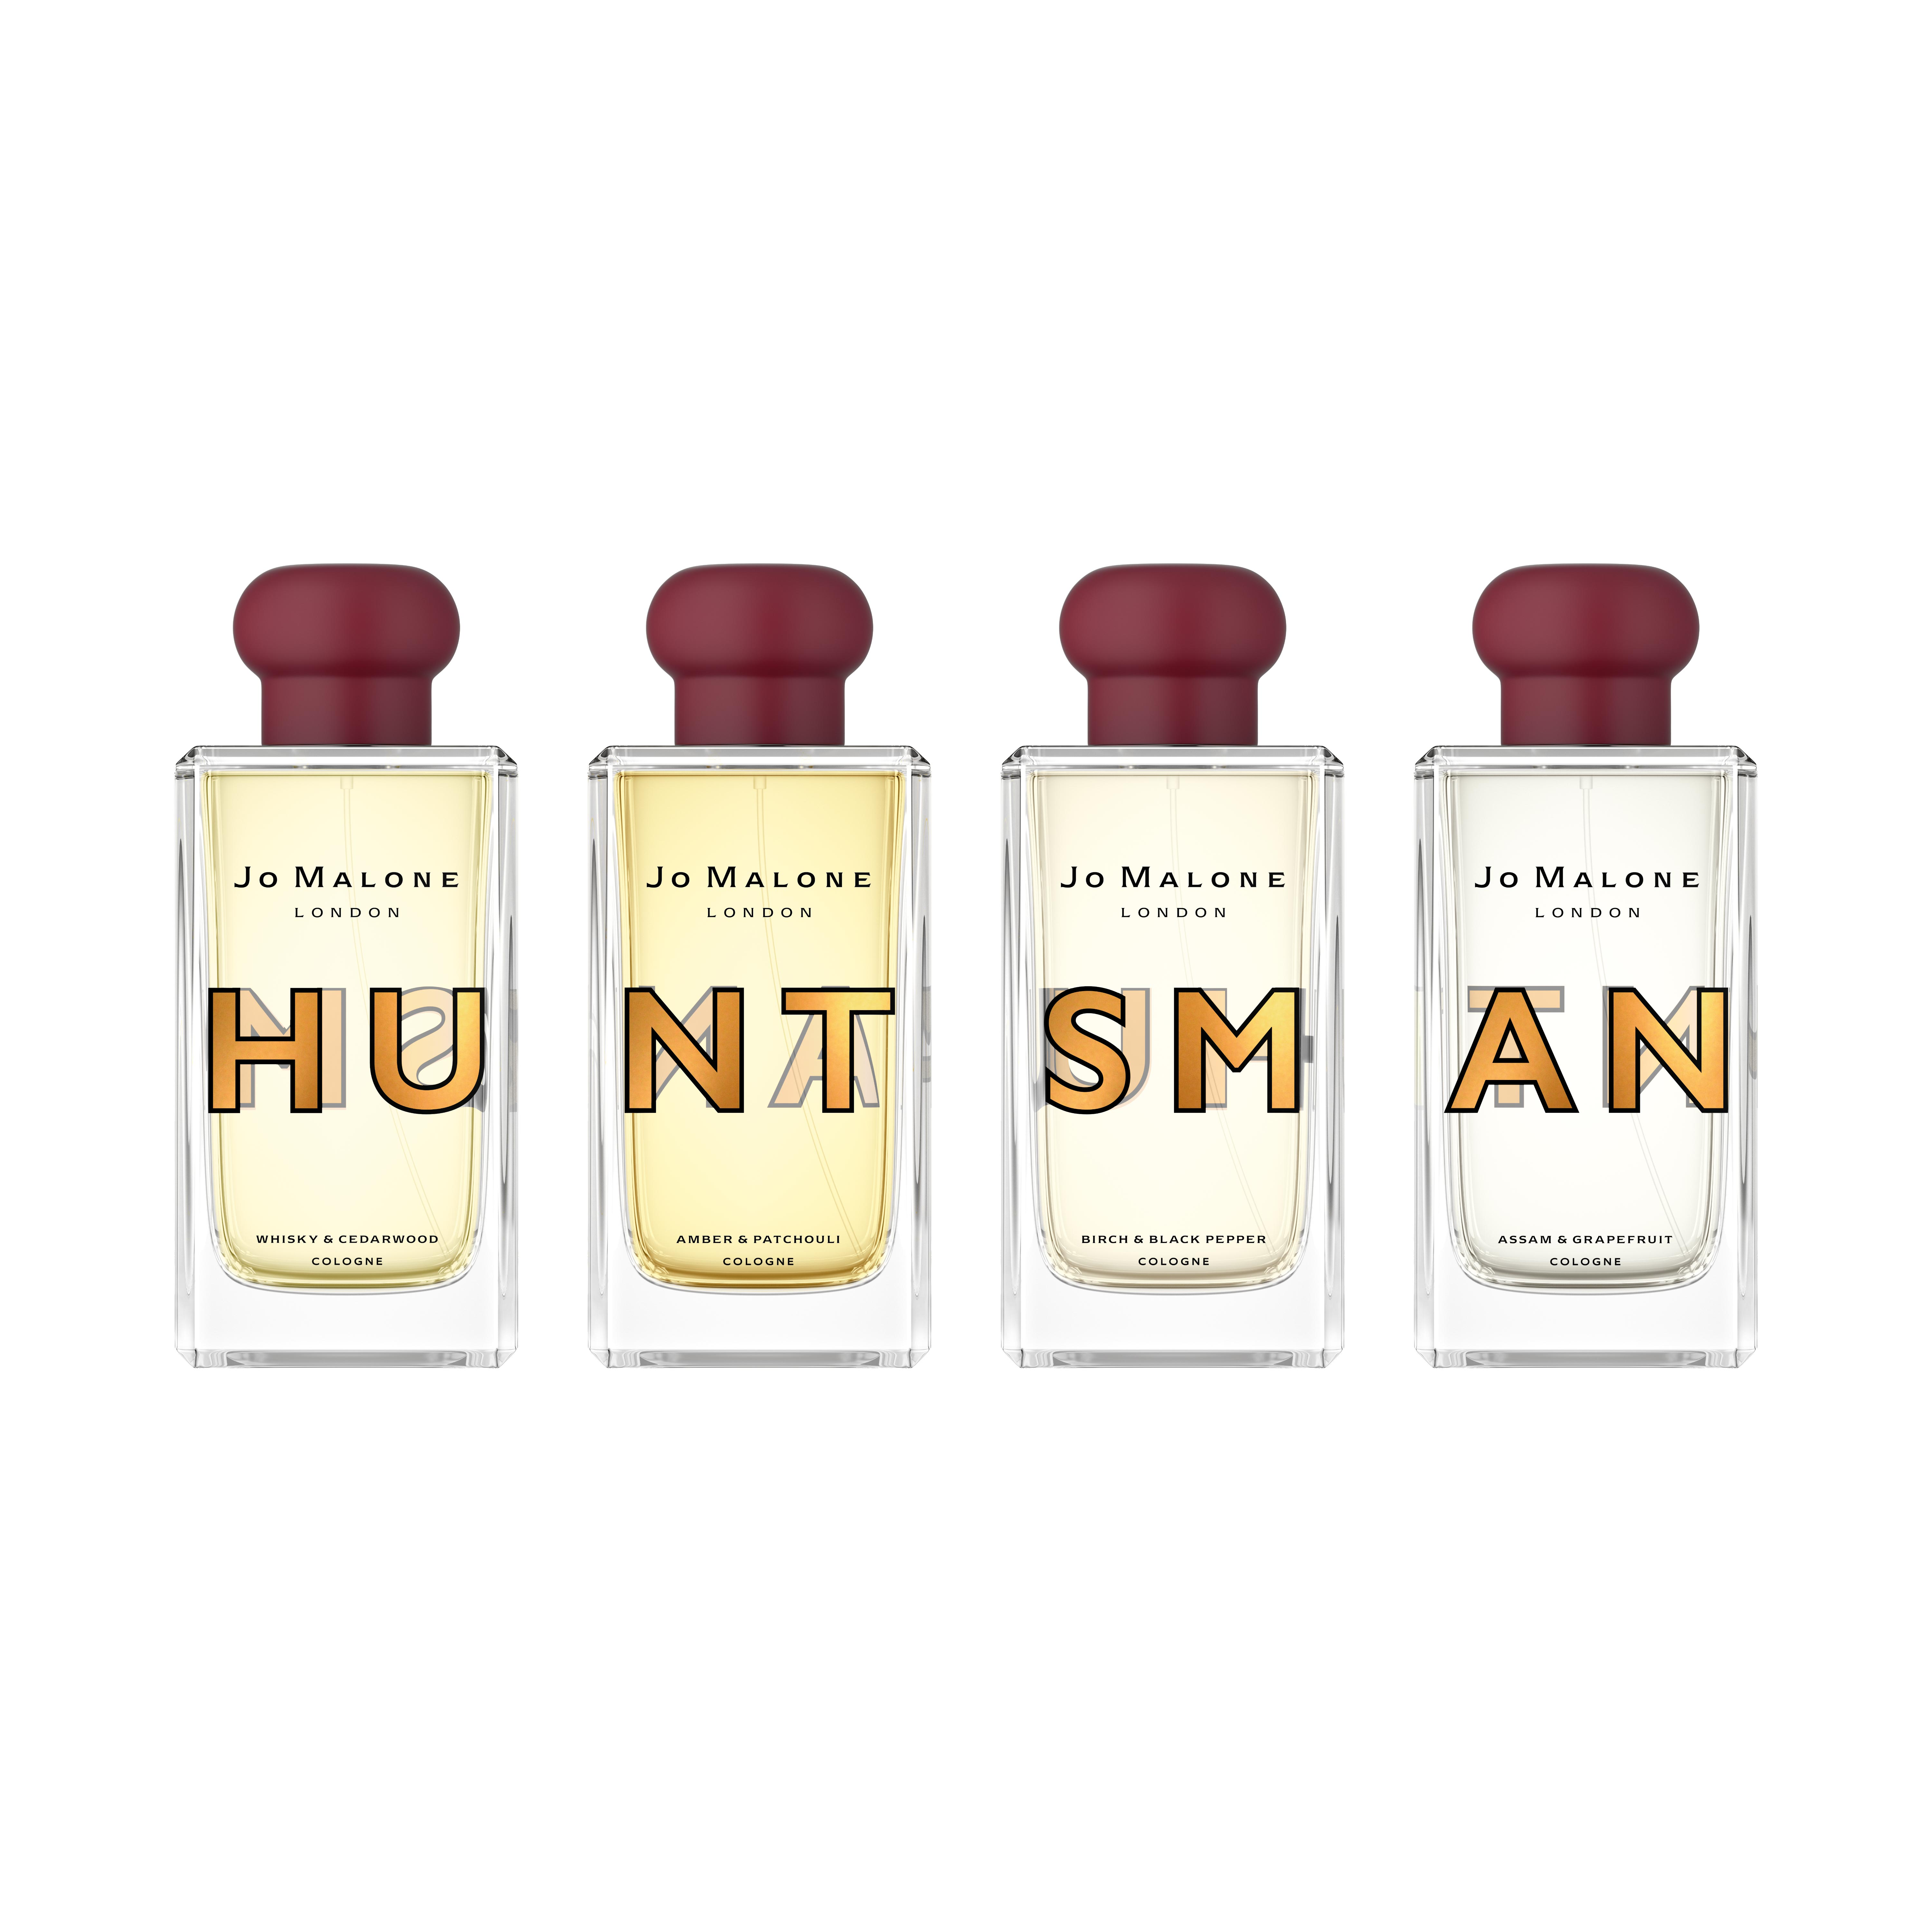 Savile Row tailor Huntsman and Jo Malone have collaborated on a set of four men's colognes